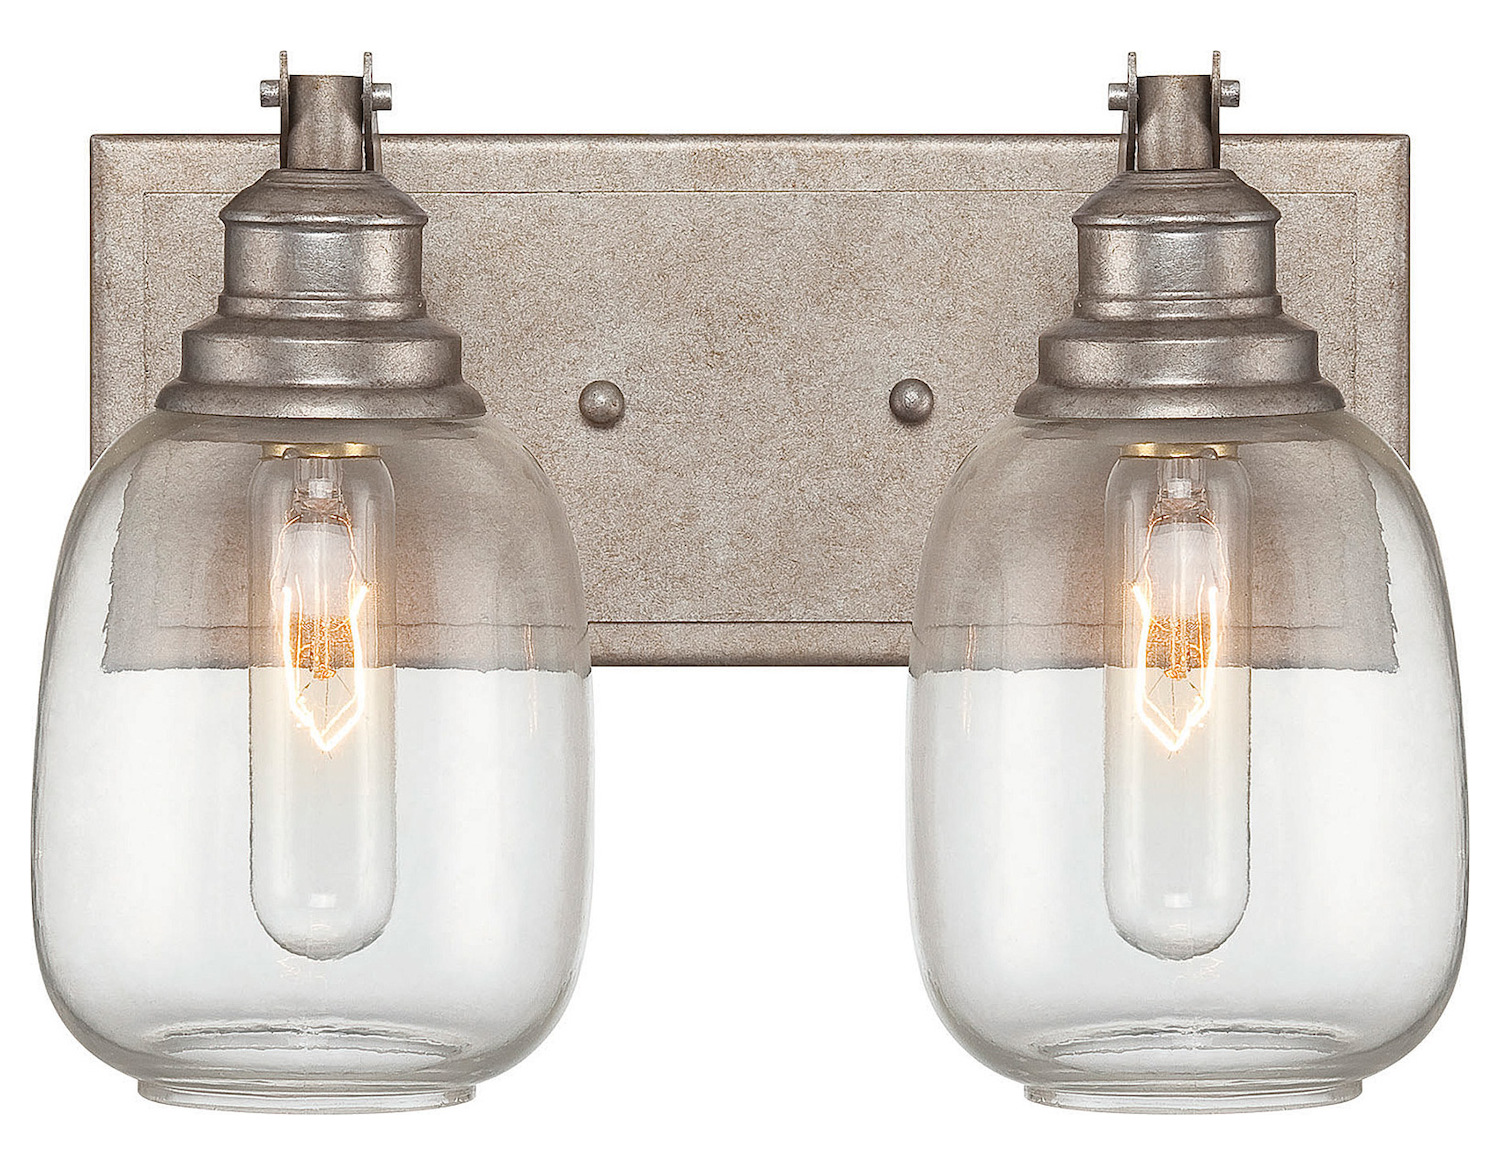 Vanity Light Clear Glass : Savoy House Two Light Clear Glass Industrial Steel Vanity Industrial Steel 8-4334-2-27 From ...